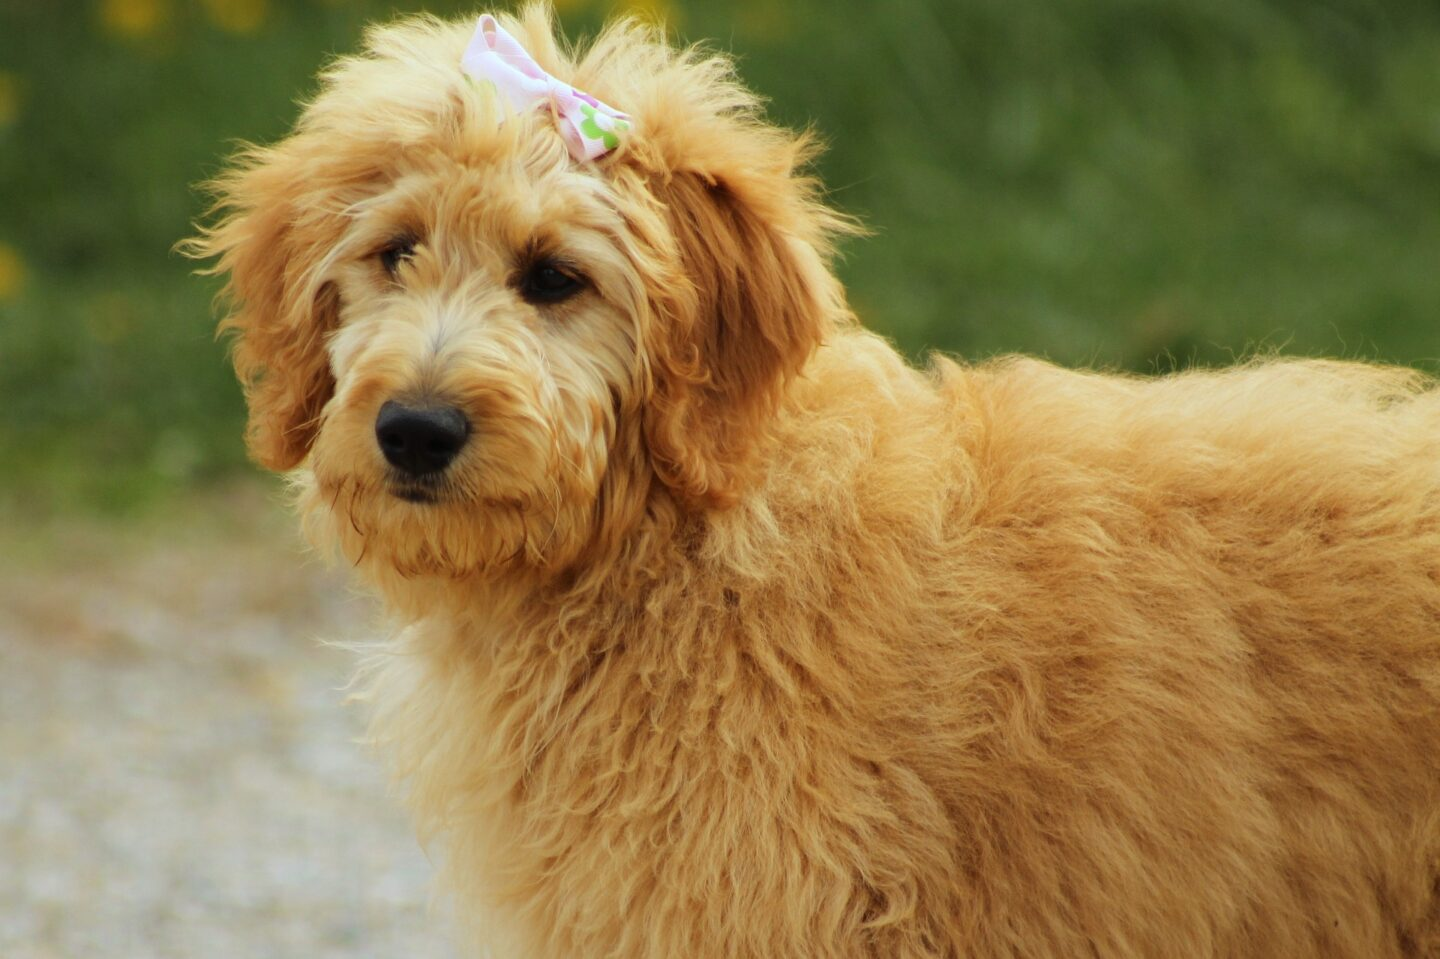 Choosing The First Pet? Take a Look at These Pooches